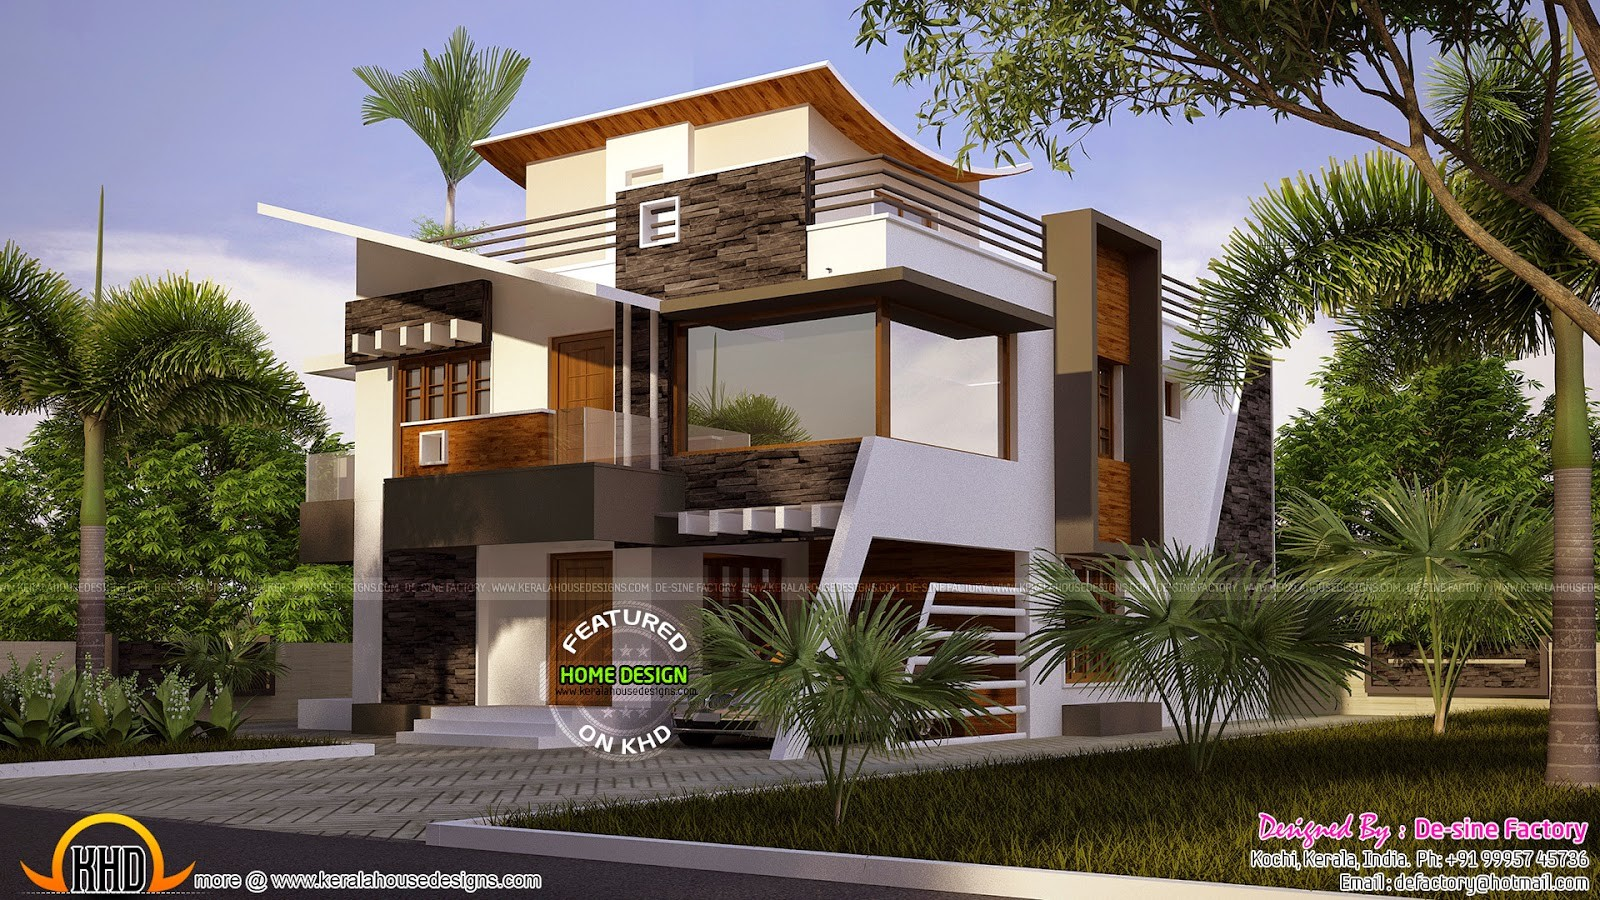 Furniture Design Ultra Modern House Plans Designs